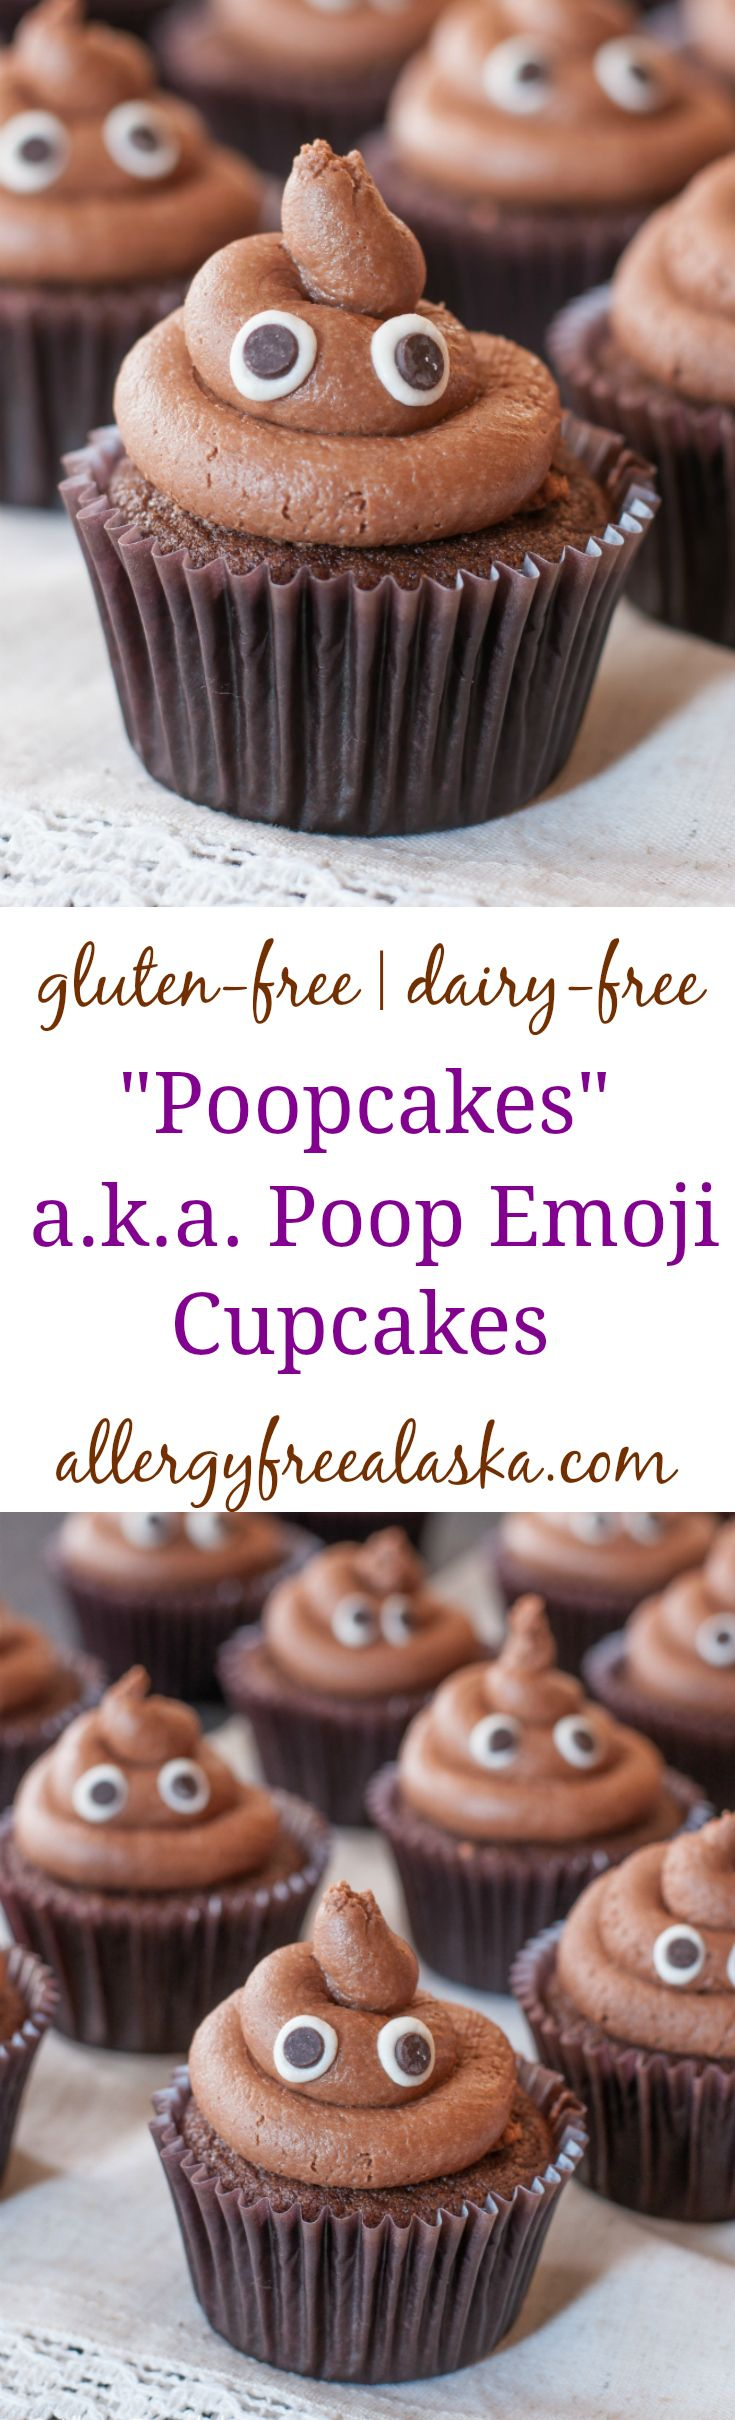 """These Gluten Free """"Poopcakes"""" Poop Emoji Cupcakes are a fun and delicious take on the poop emoji icon. They will be a hit at your next party and will most likely spark some silly conversations!"""